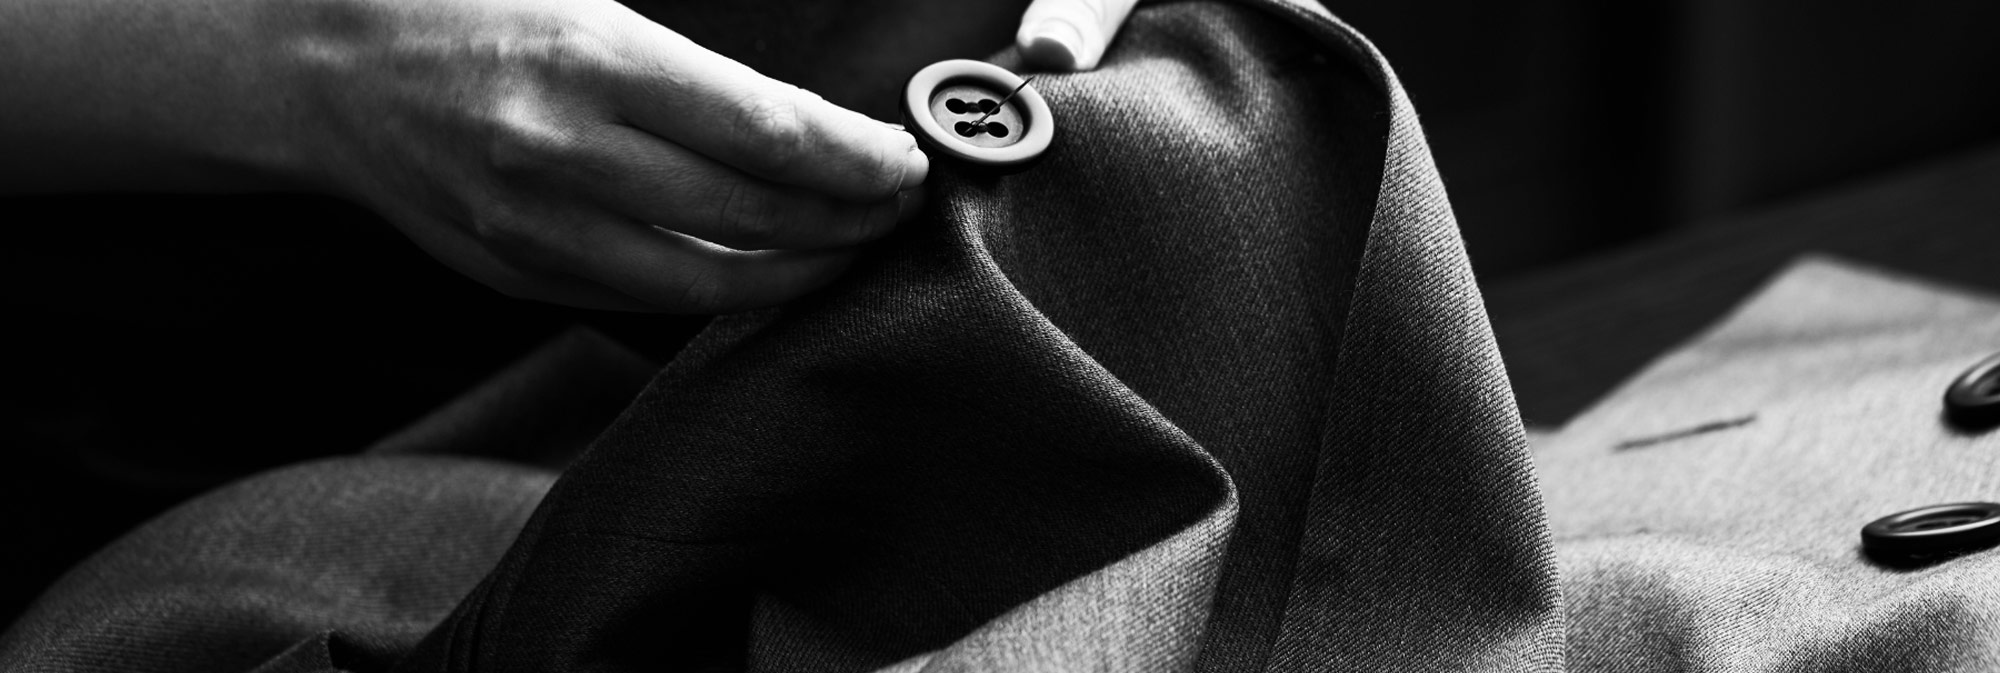 Close-up of hand carefully sowing a button on to a jacket